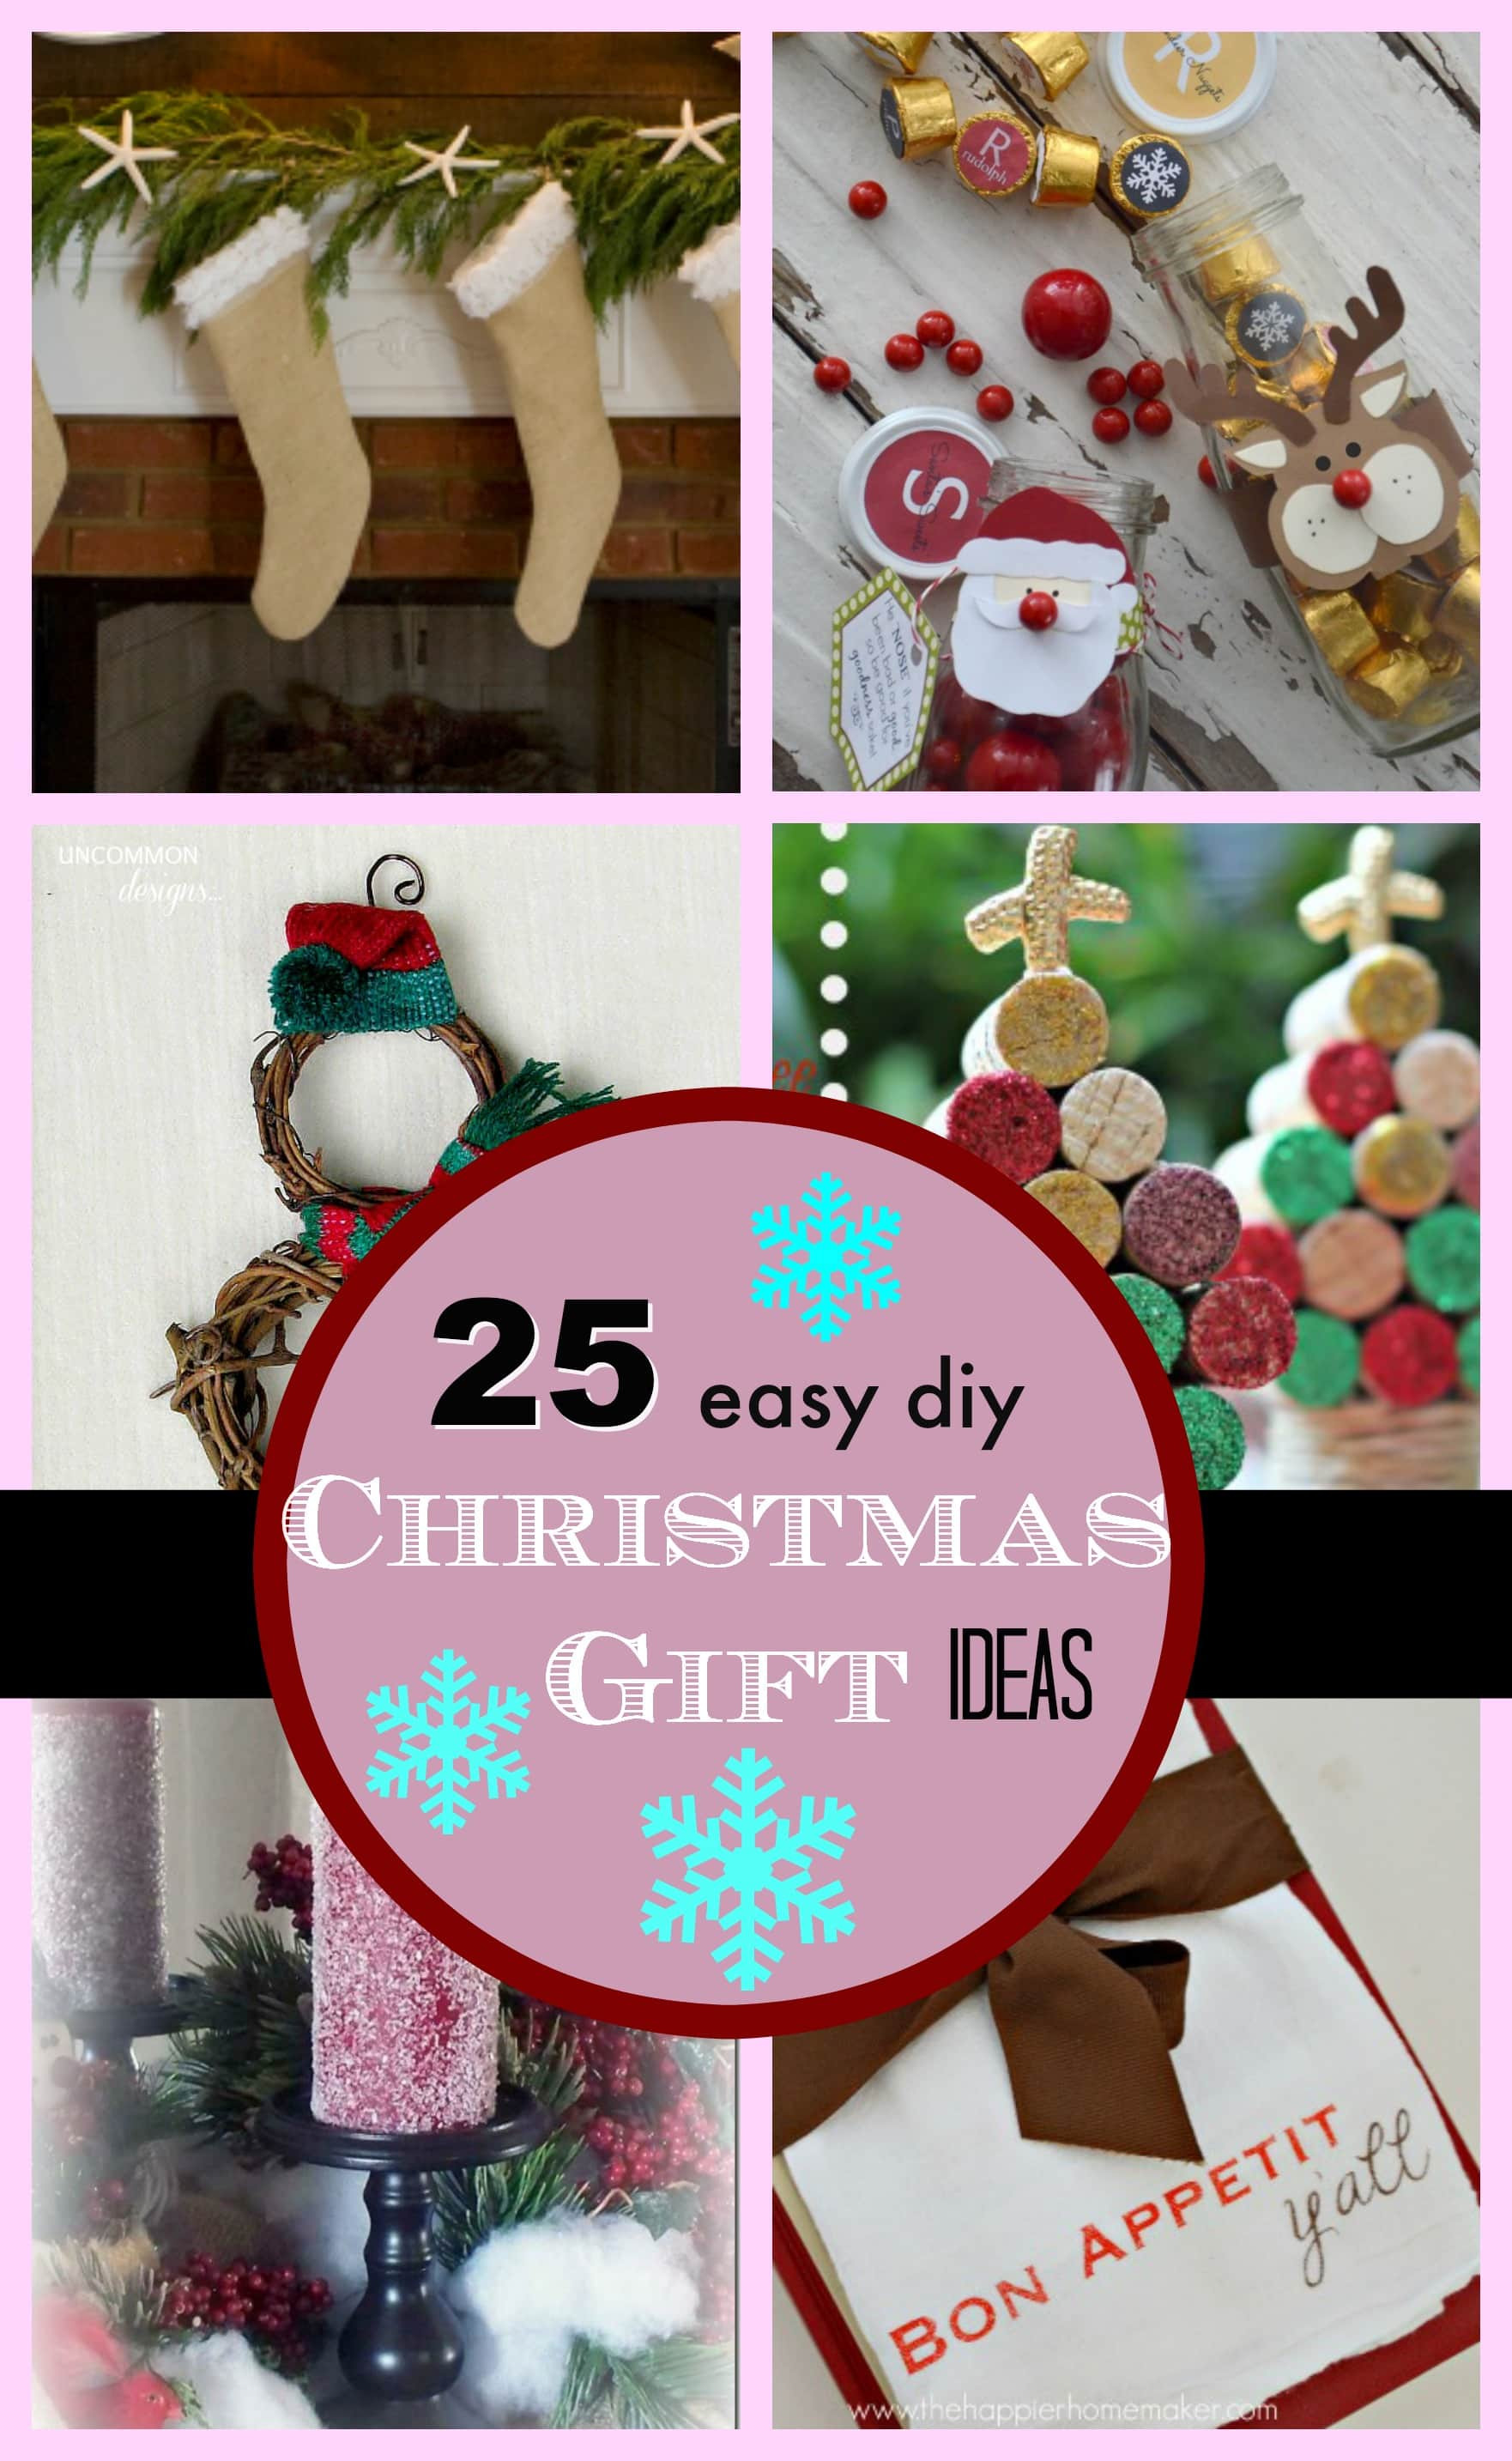 Best ideas about DIY Christmas Presents Ideas . Save or Pin 25 DIY Easy Christmas Gift Ideas PinkWhen Now.